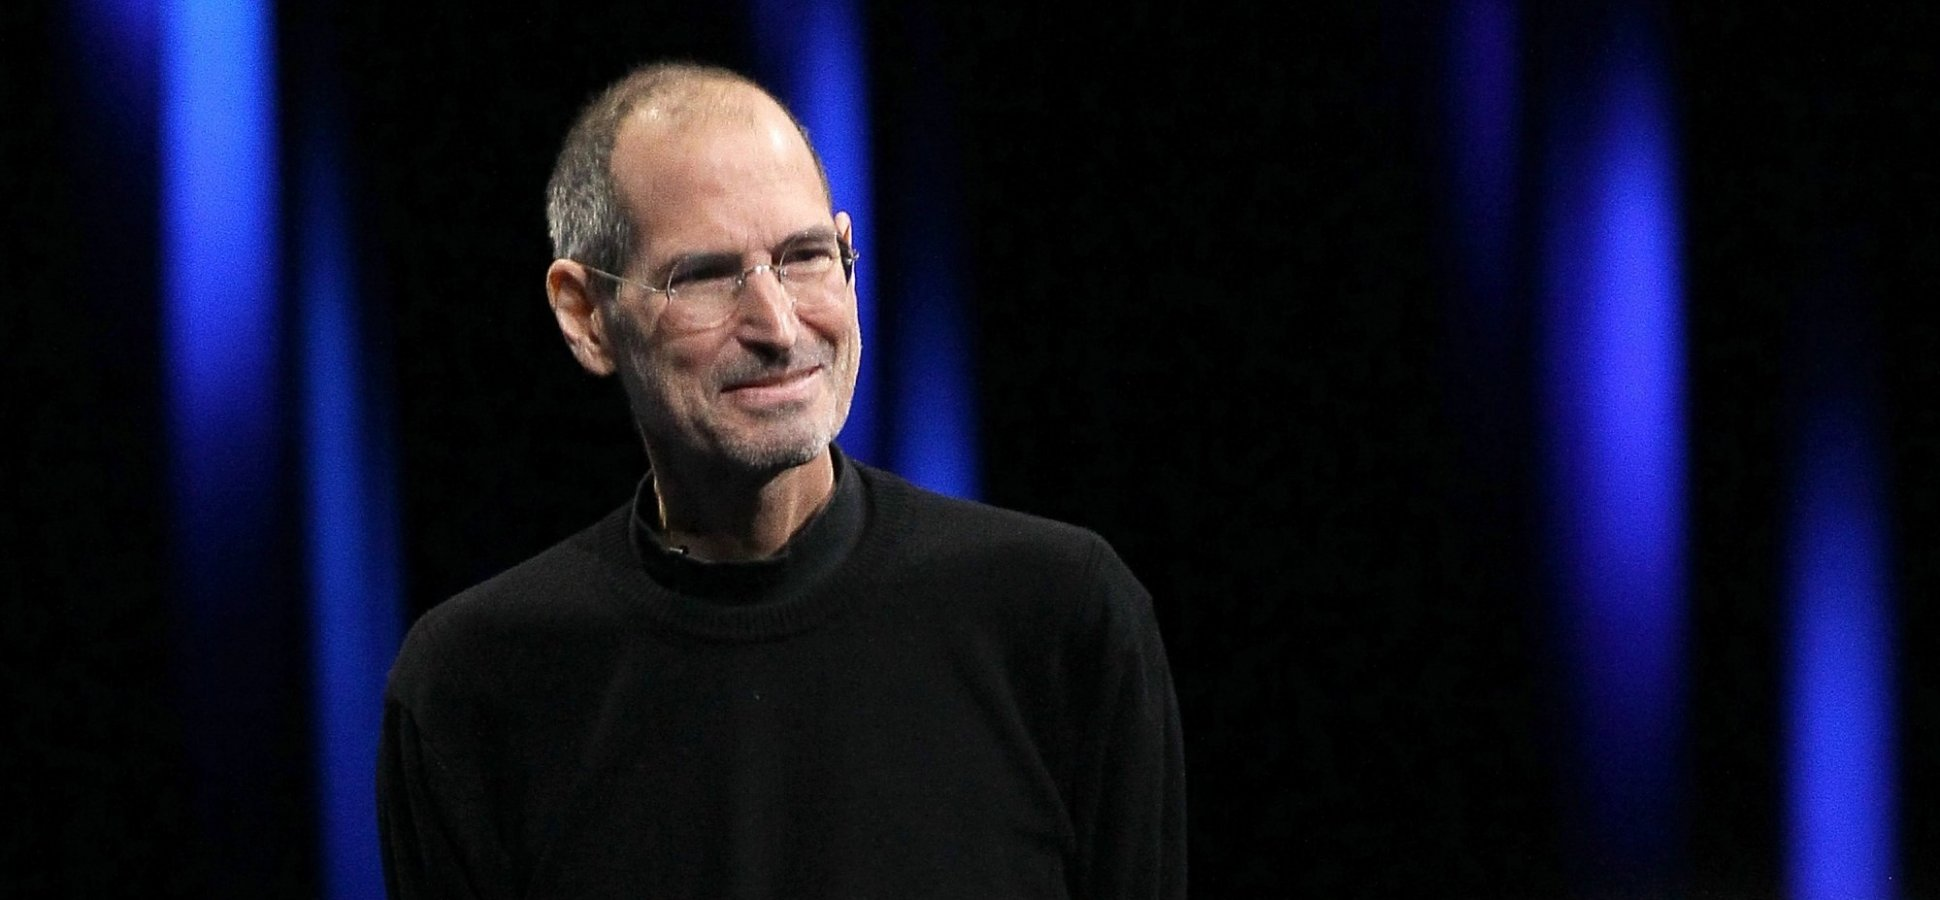 The Most Important Steve Jobs Quote That No One Ever Talks About